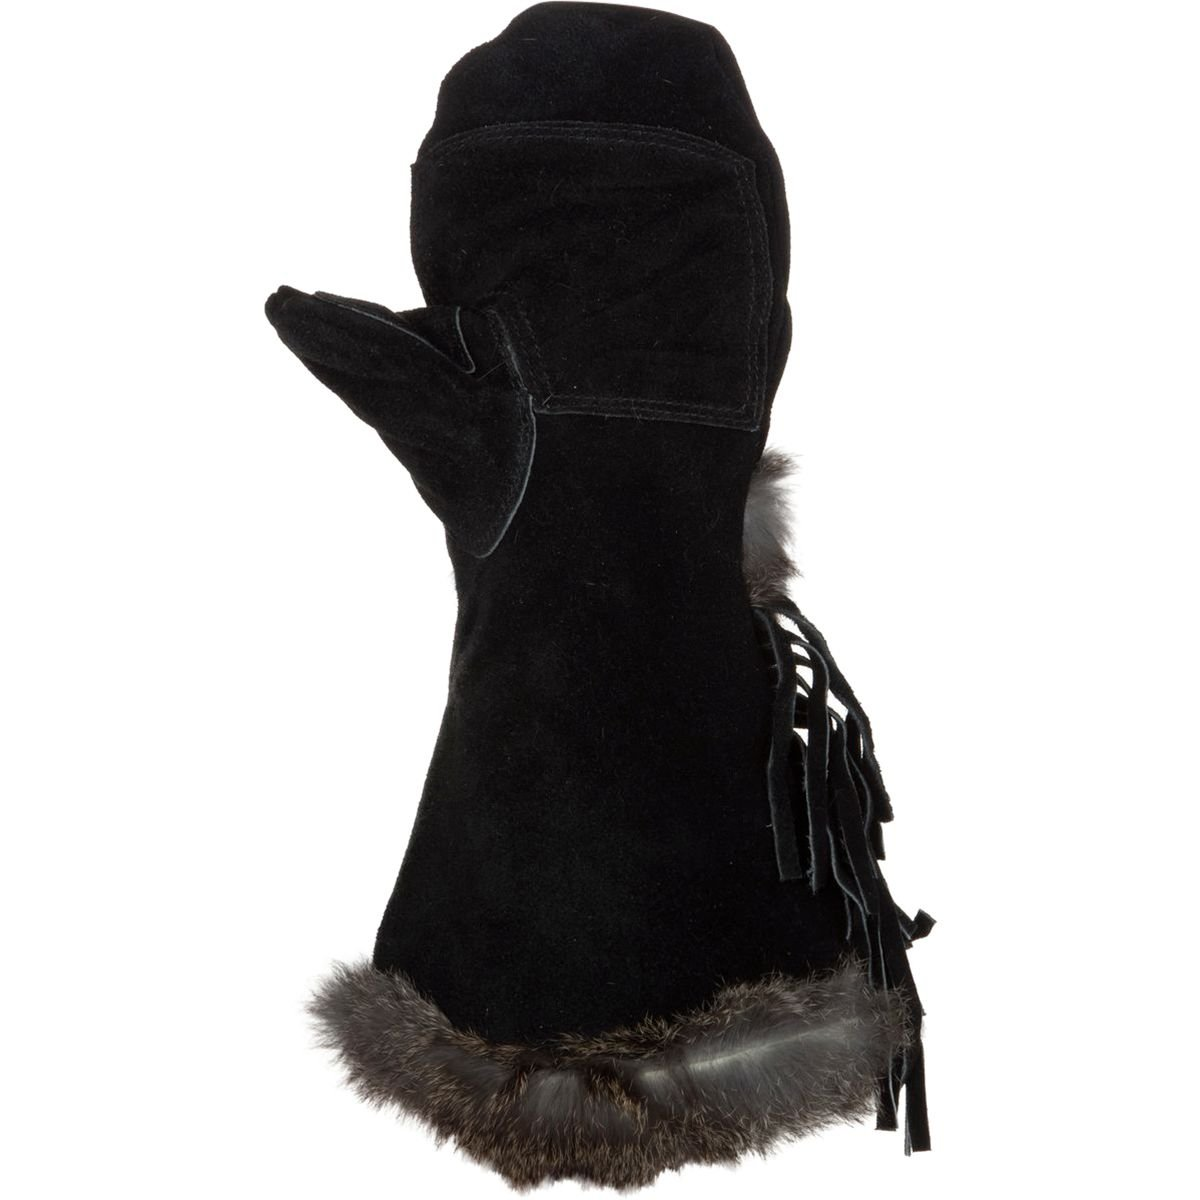 Astis Callie Mitten Black Small by Astis (Image #2)